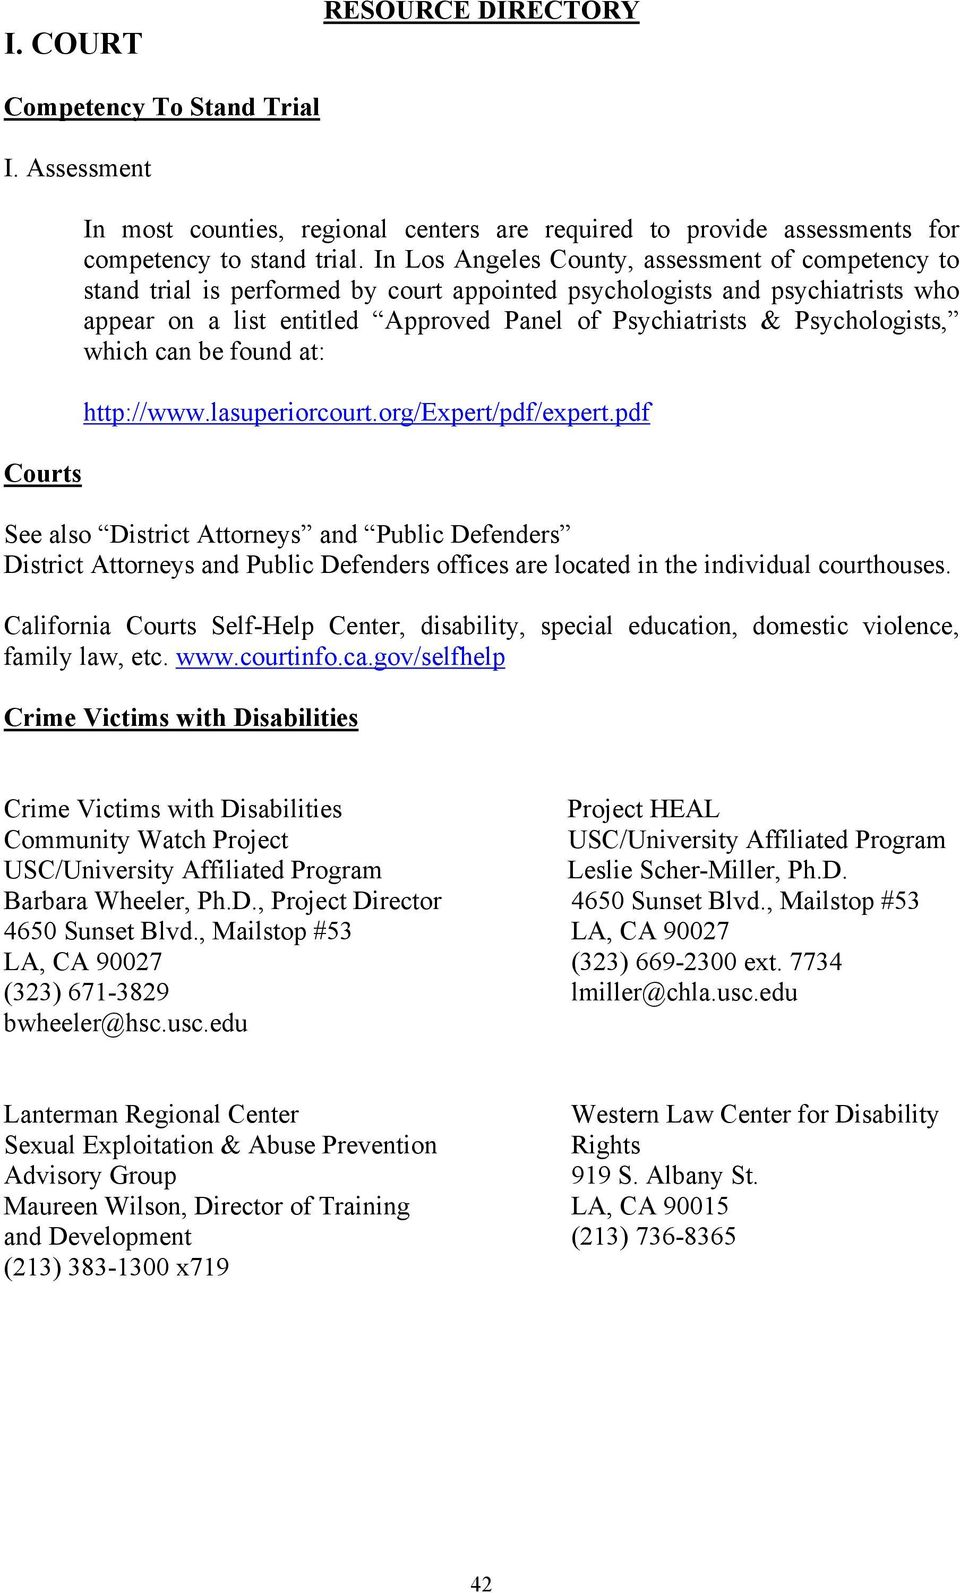 Psychologists, which can be found at: http://www.lasuperiorcourt.org/expert/pdf/expert.